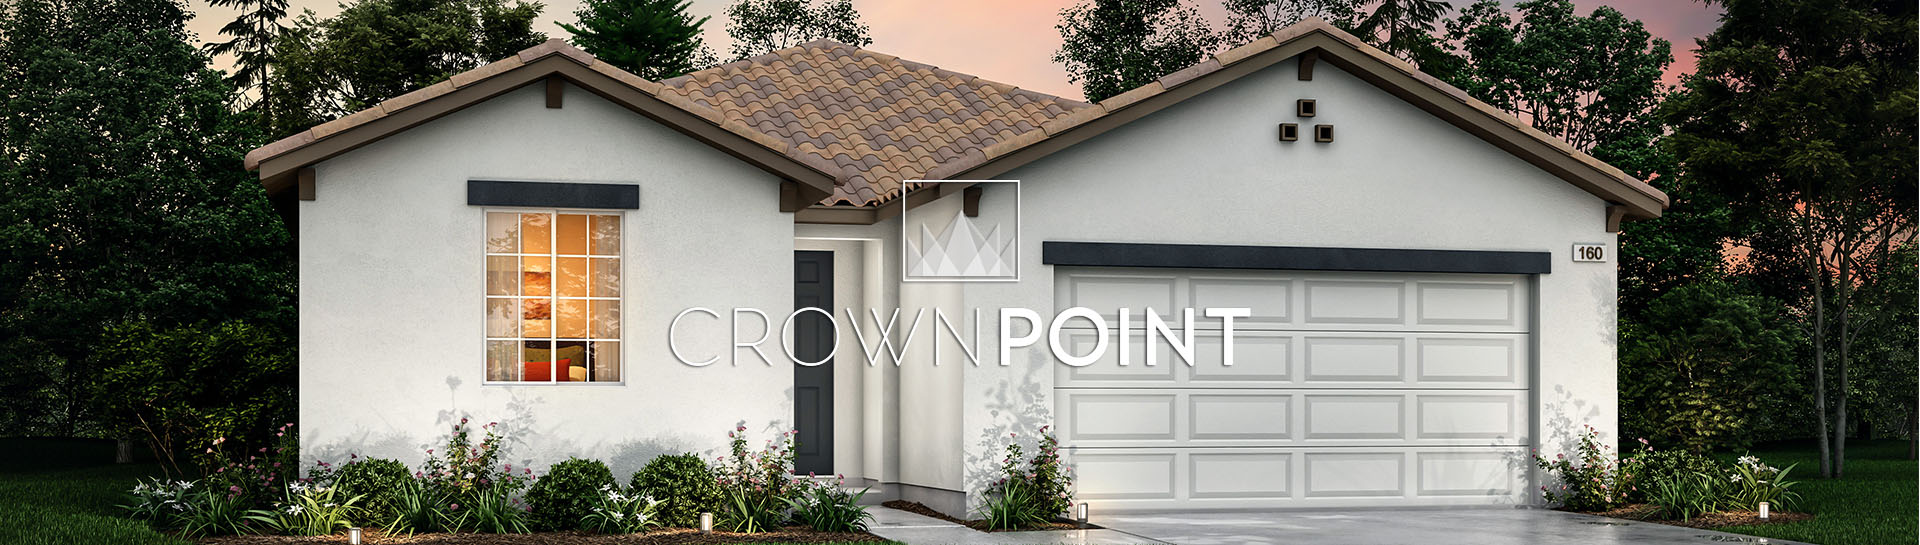 Join Us This Saturday, August 7, For A Crown Point Pre-Grand Opening